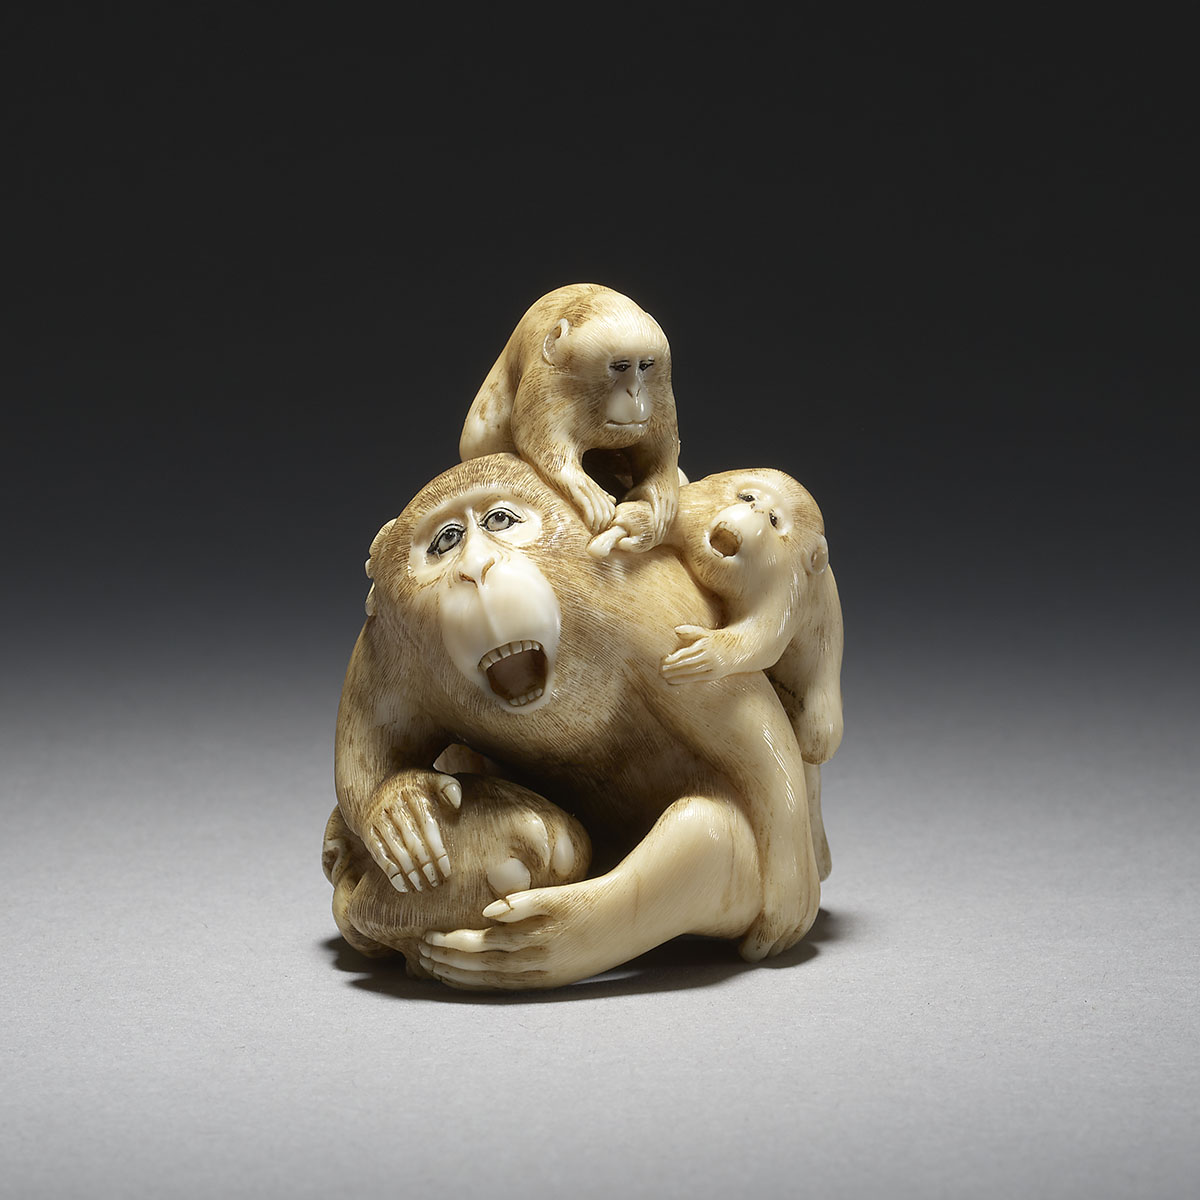 MR3683_v1 Ivory Netsuke of Monkeys by Masatami